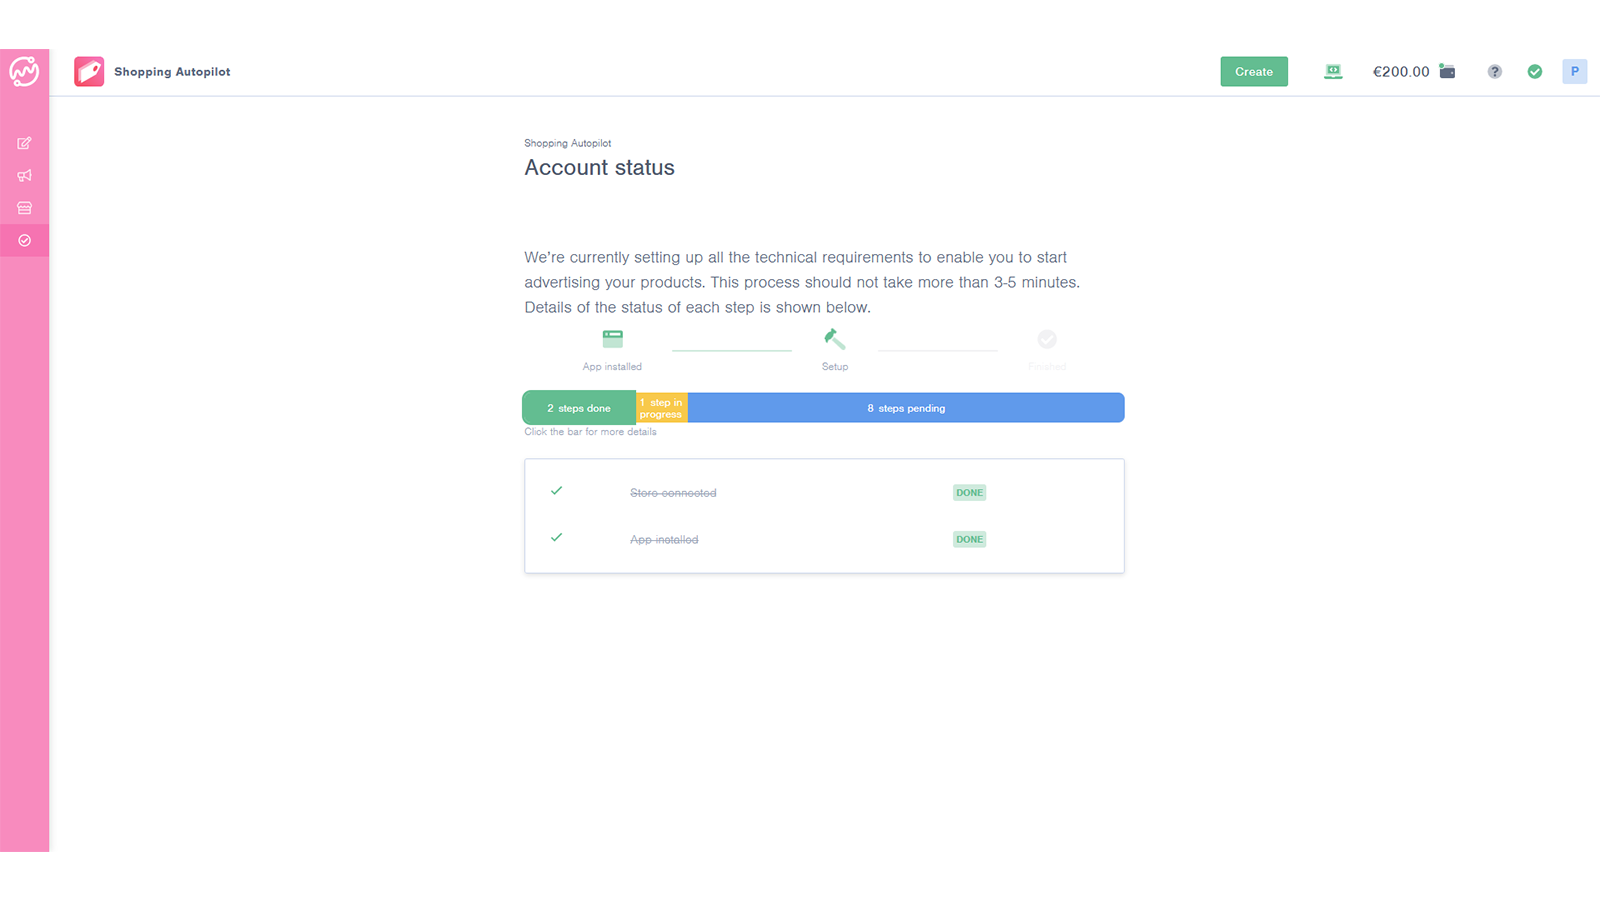 The Next Ad Shopping Autopilot Automated Onboarding